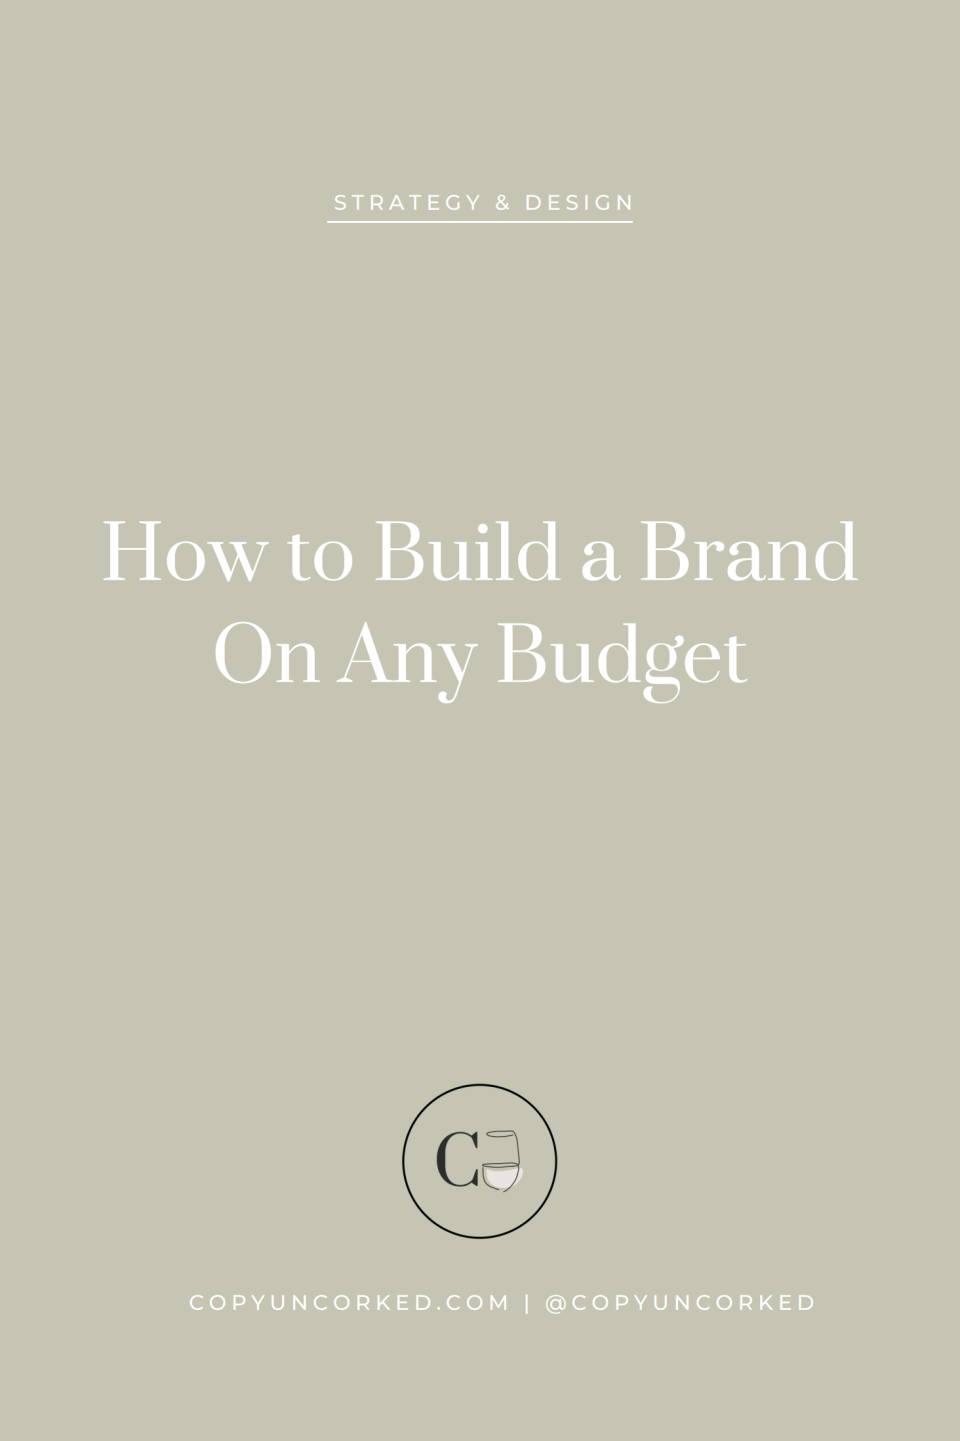 How to Build a Brand on Any Budget - copyuncorked.com